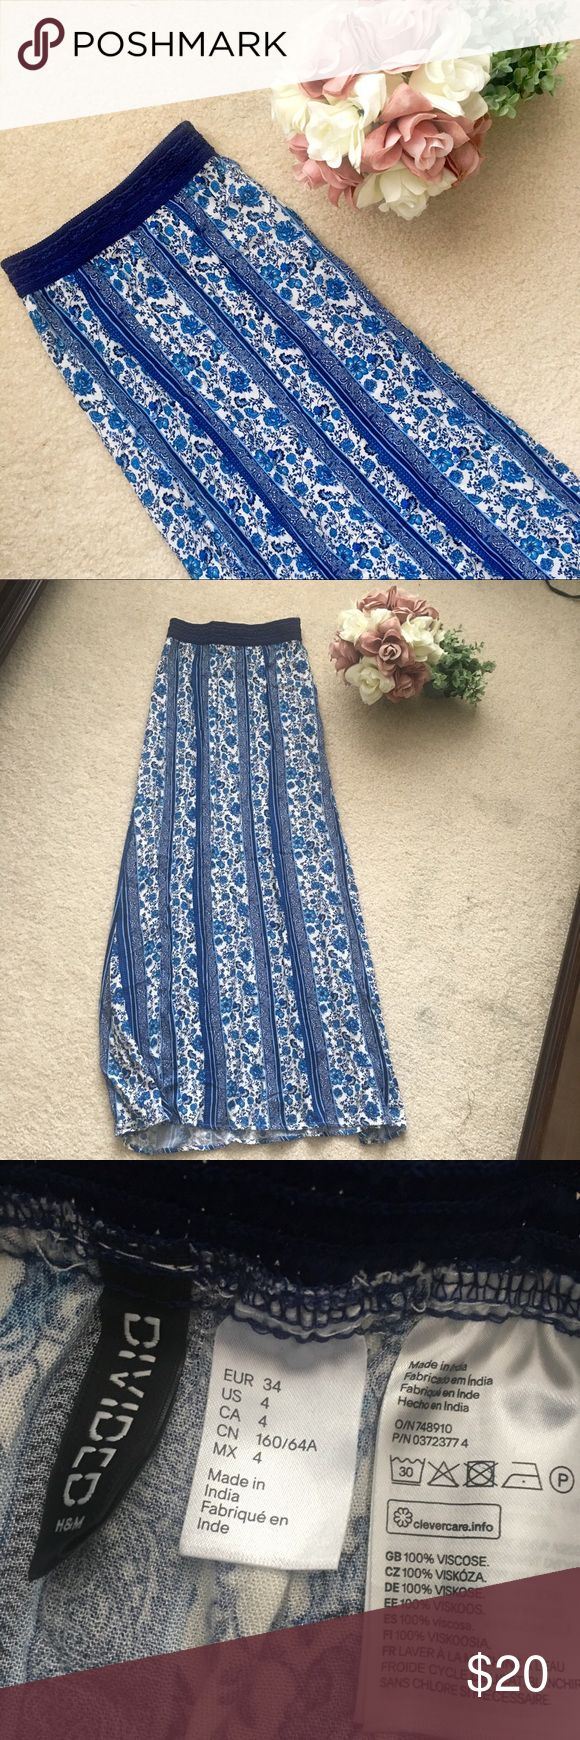 H&M Blue Floral Summer Maxi Skirt Maxi skirt with no slits. Size 4 but fits like a XXS. Rich blue color. H&M Skirts Maxi